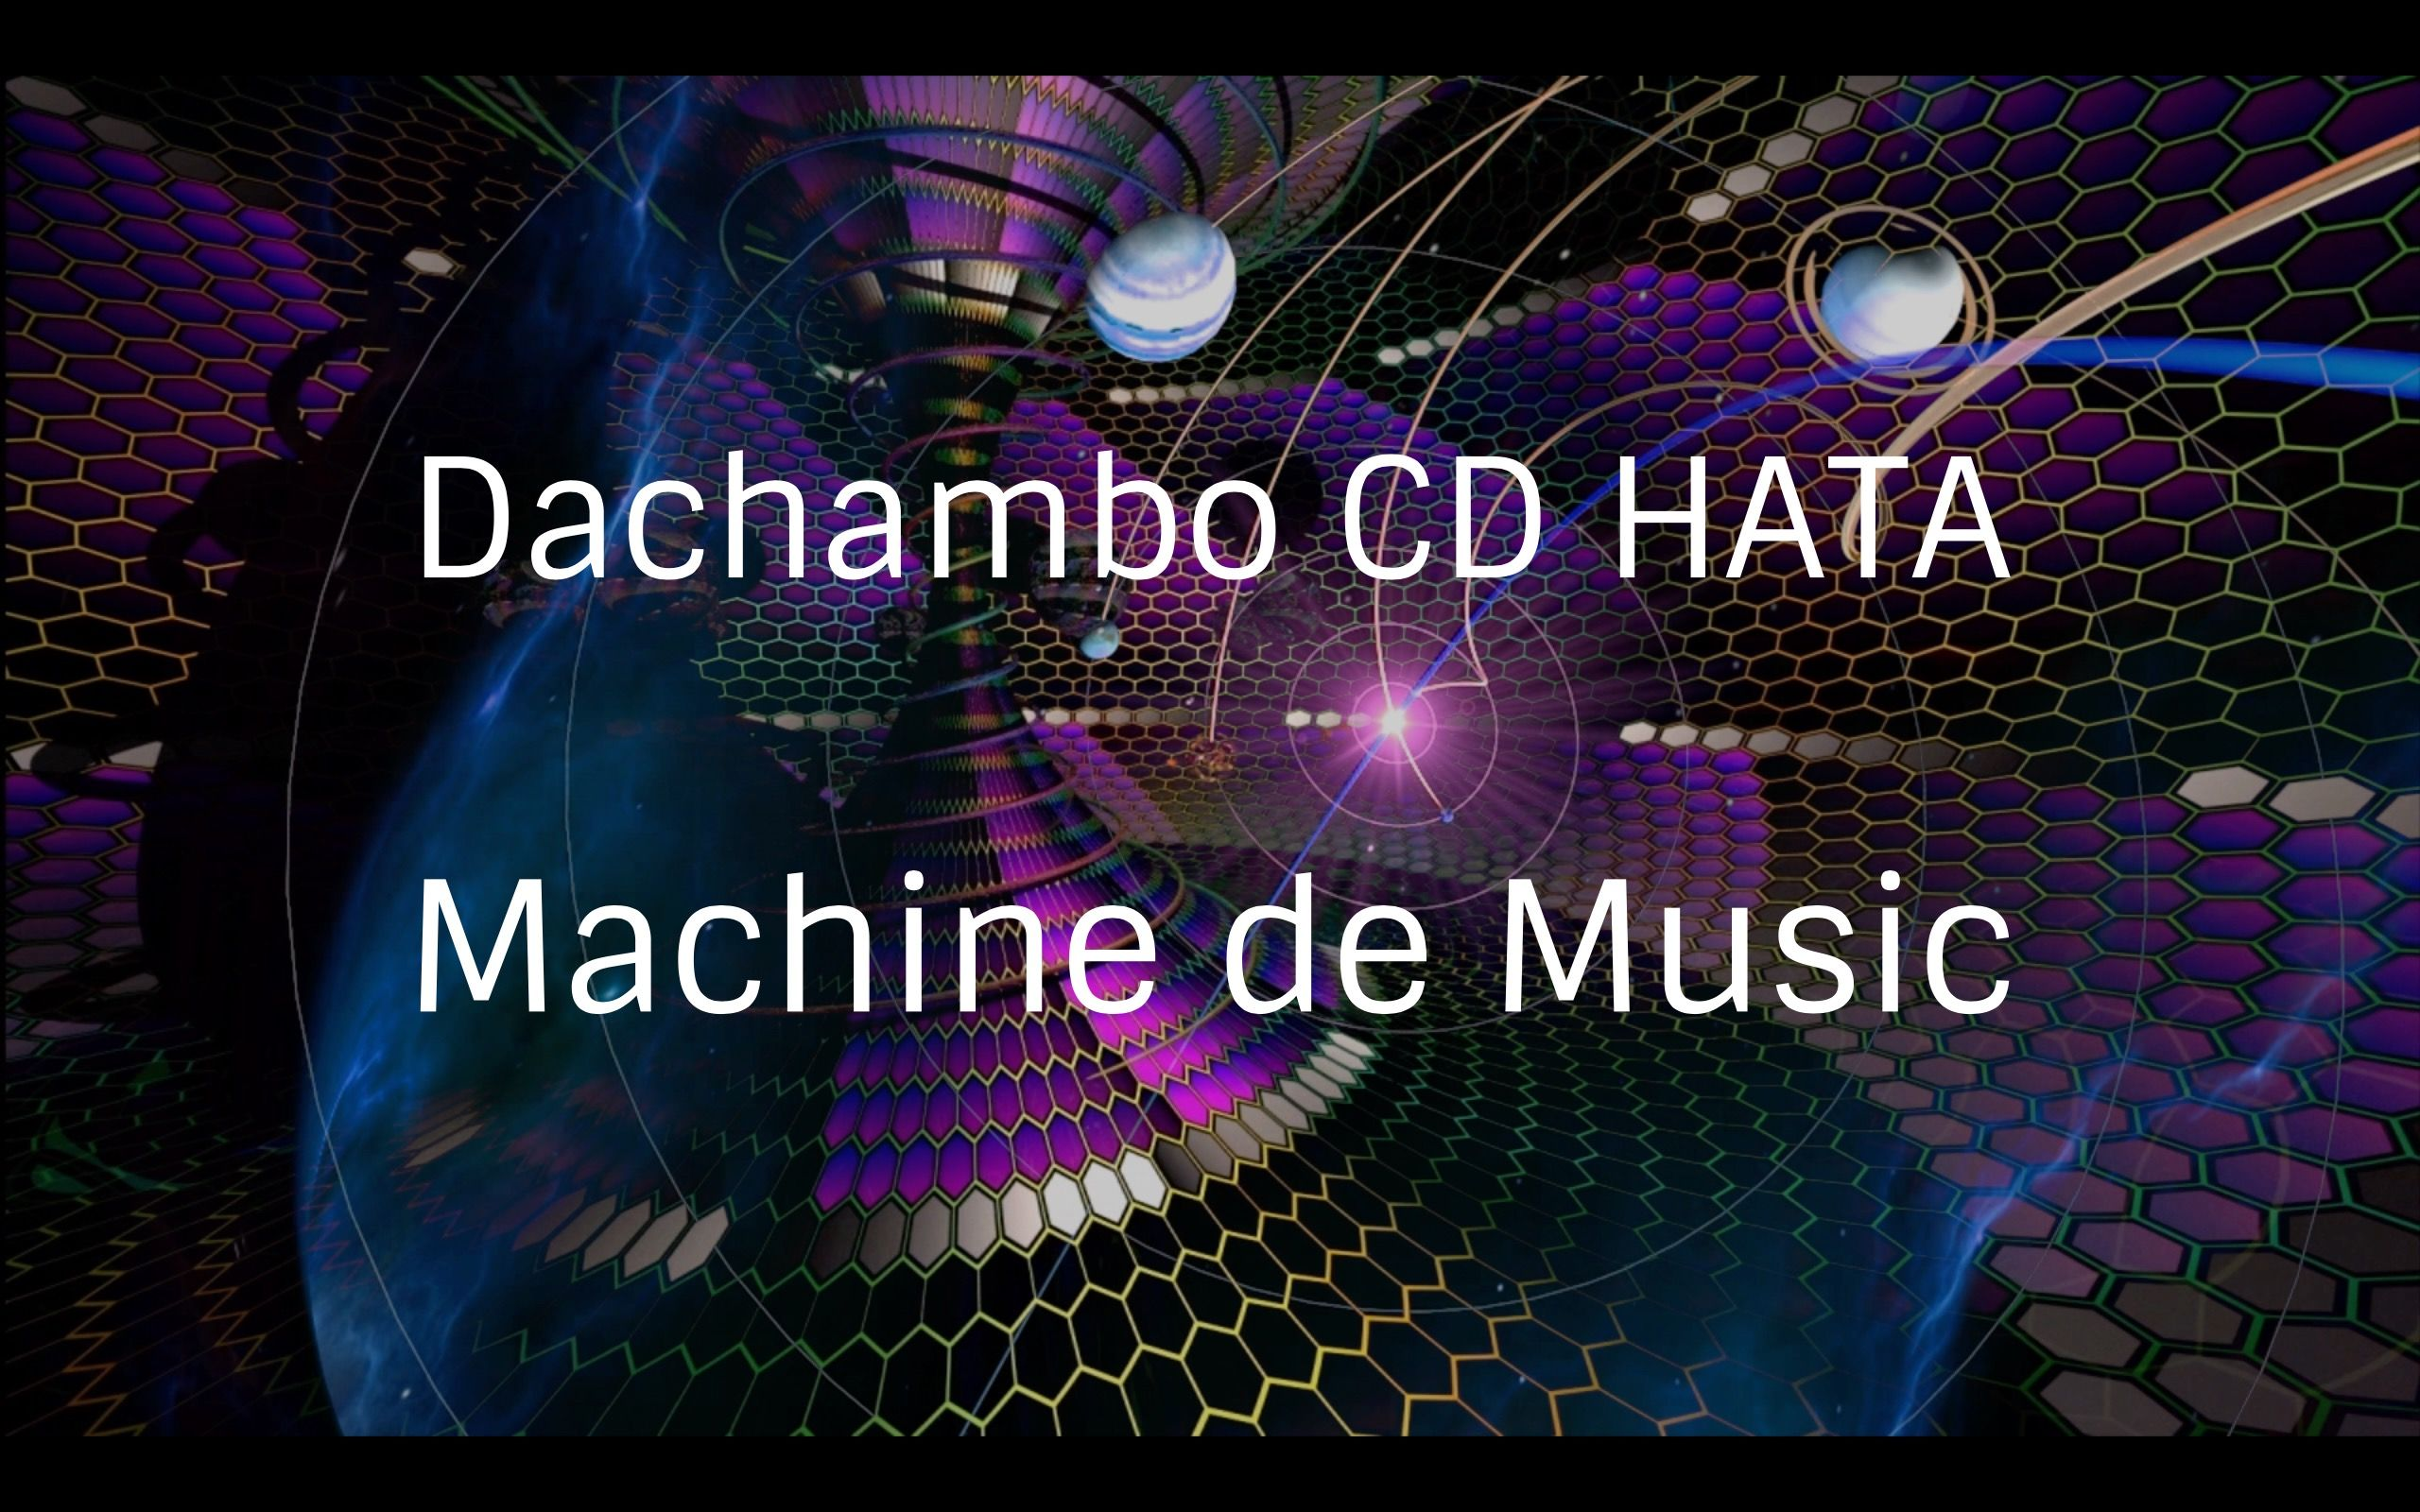 Dachambo CD HATAのMachine de Music 